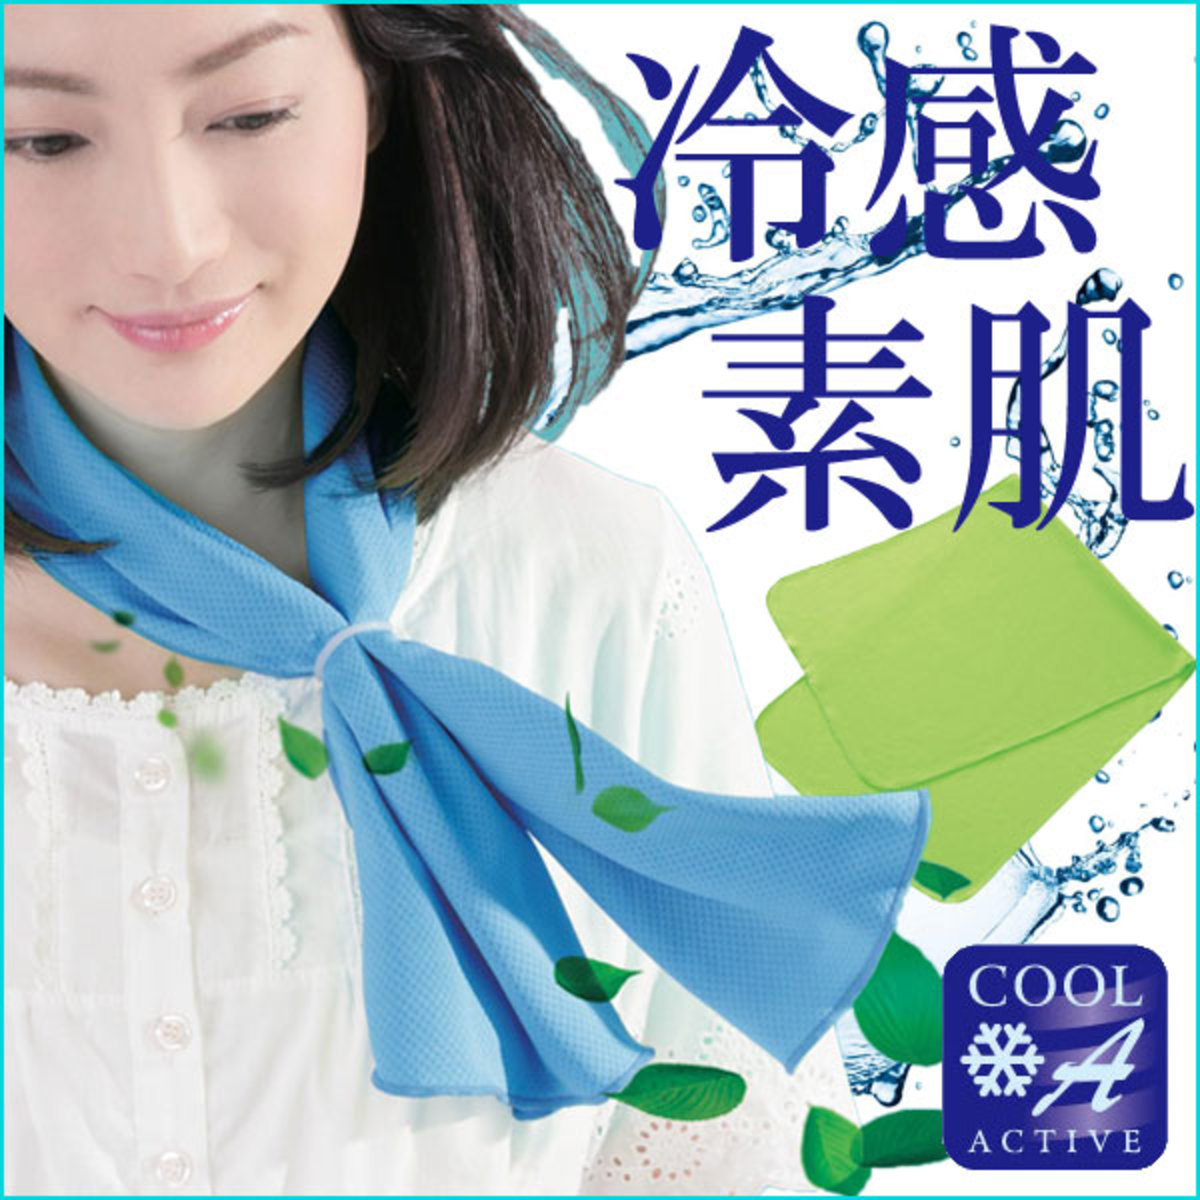 Cool and cool cold towel - blue / green